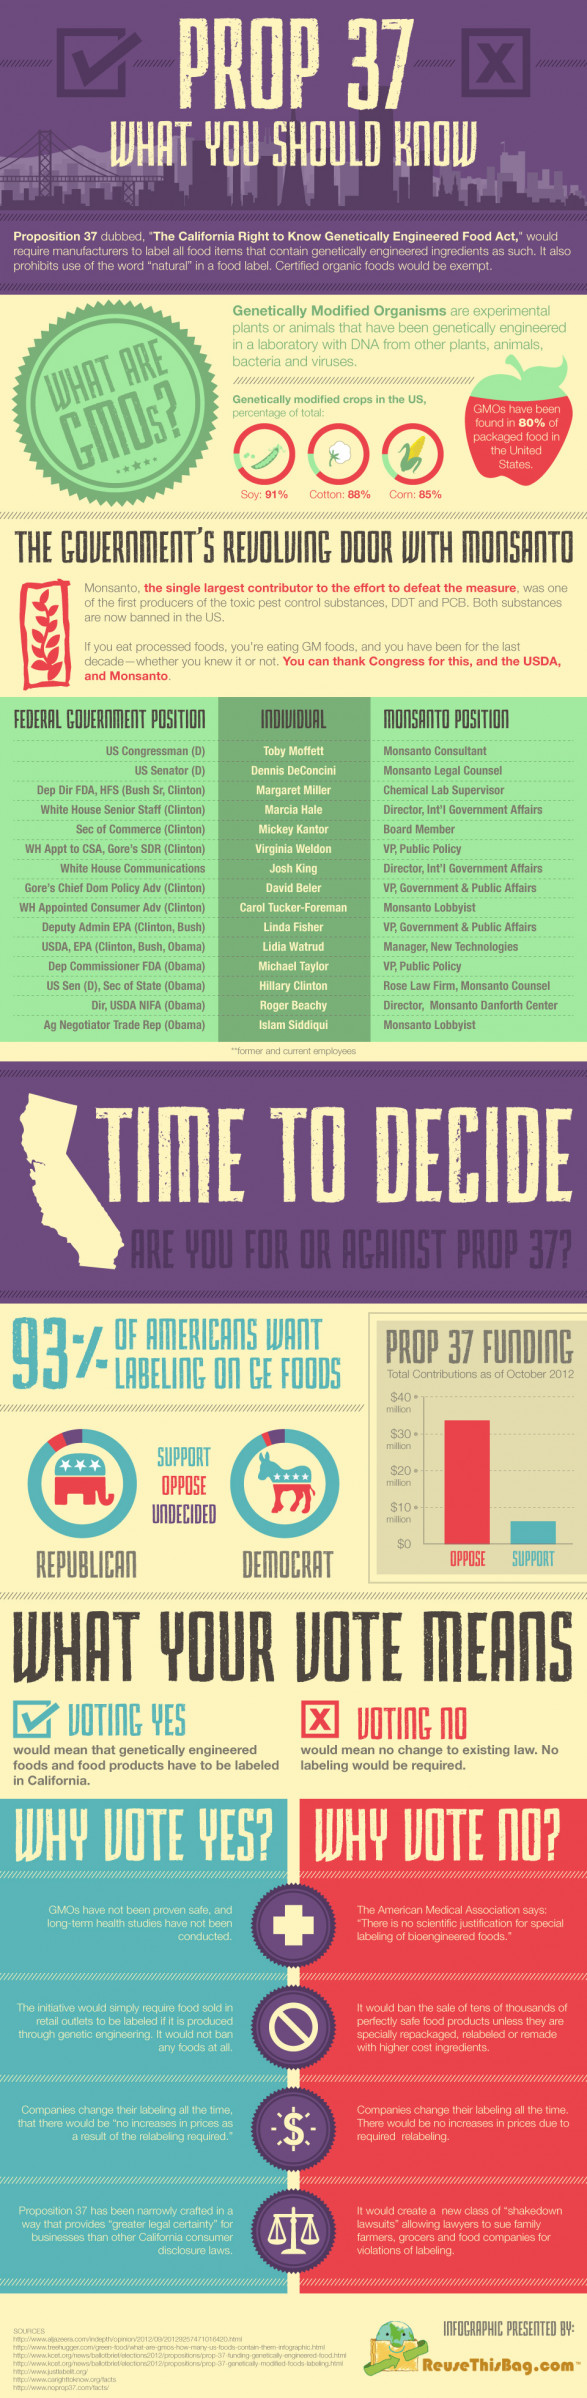 Prop 37: What You Should Know